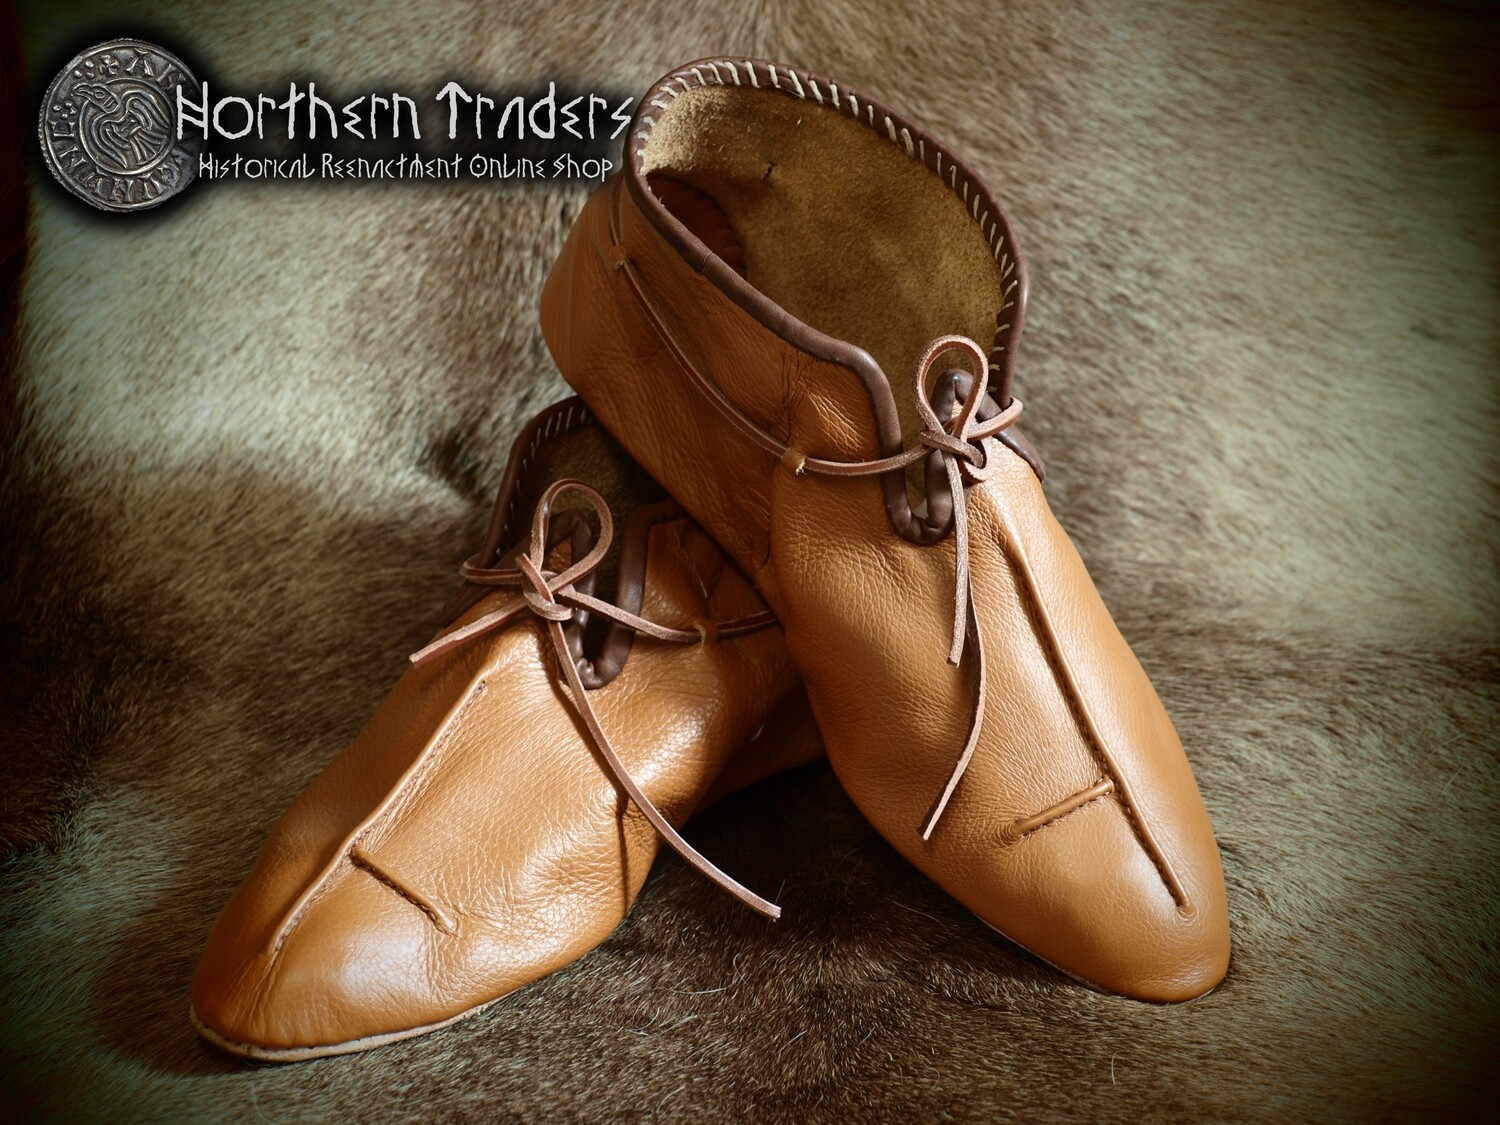 Shoes from Birka (Reconstruction)